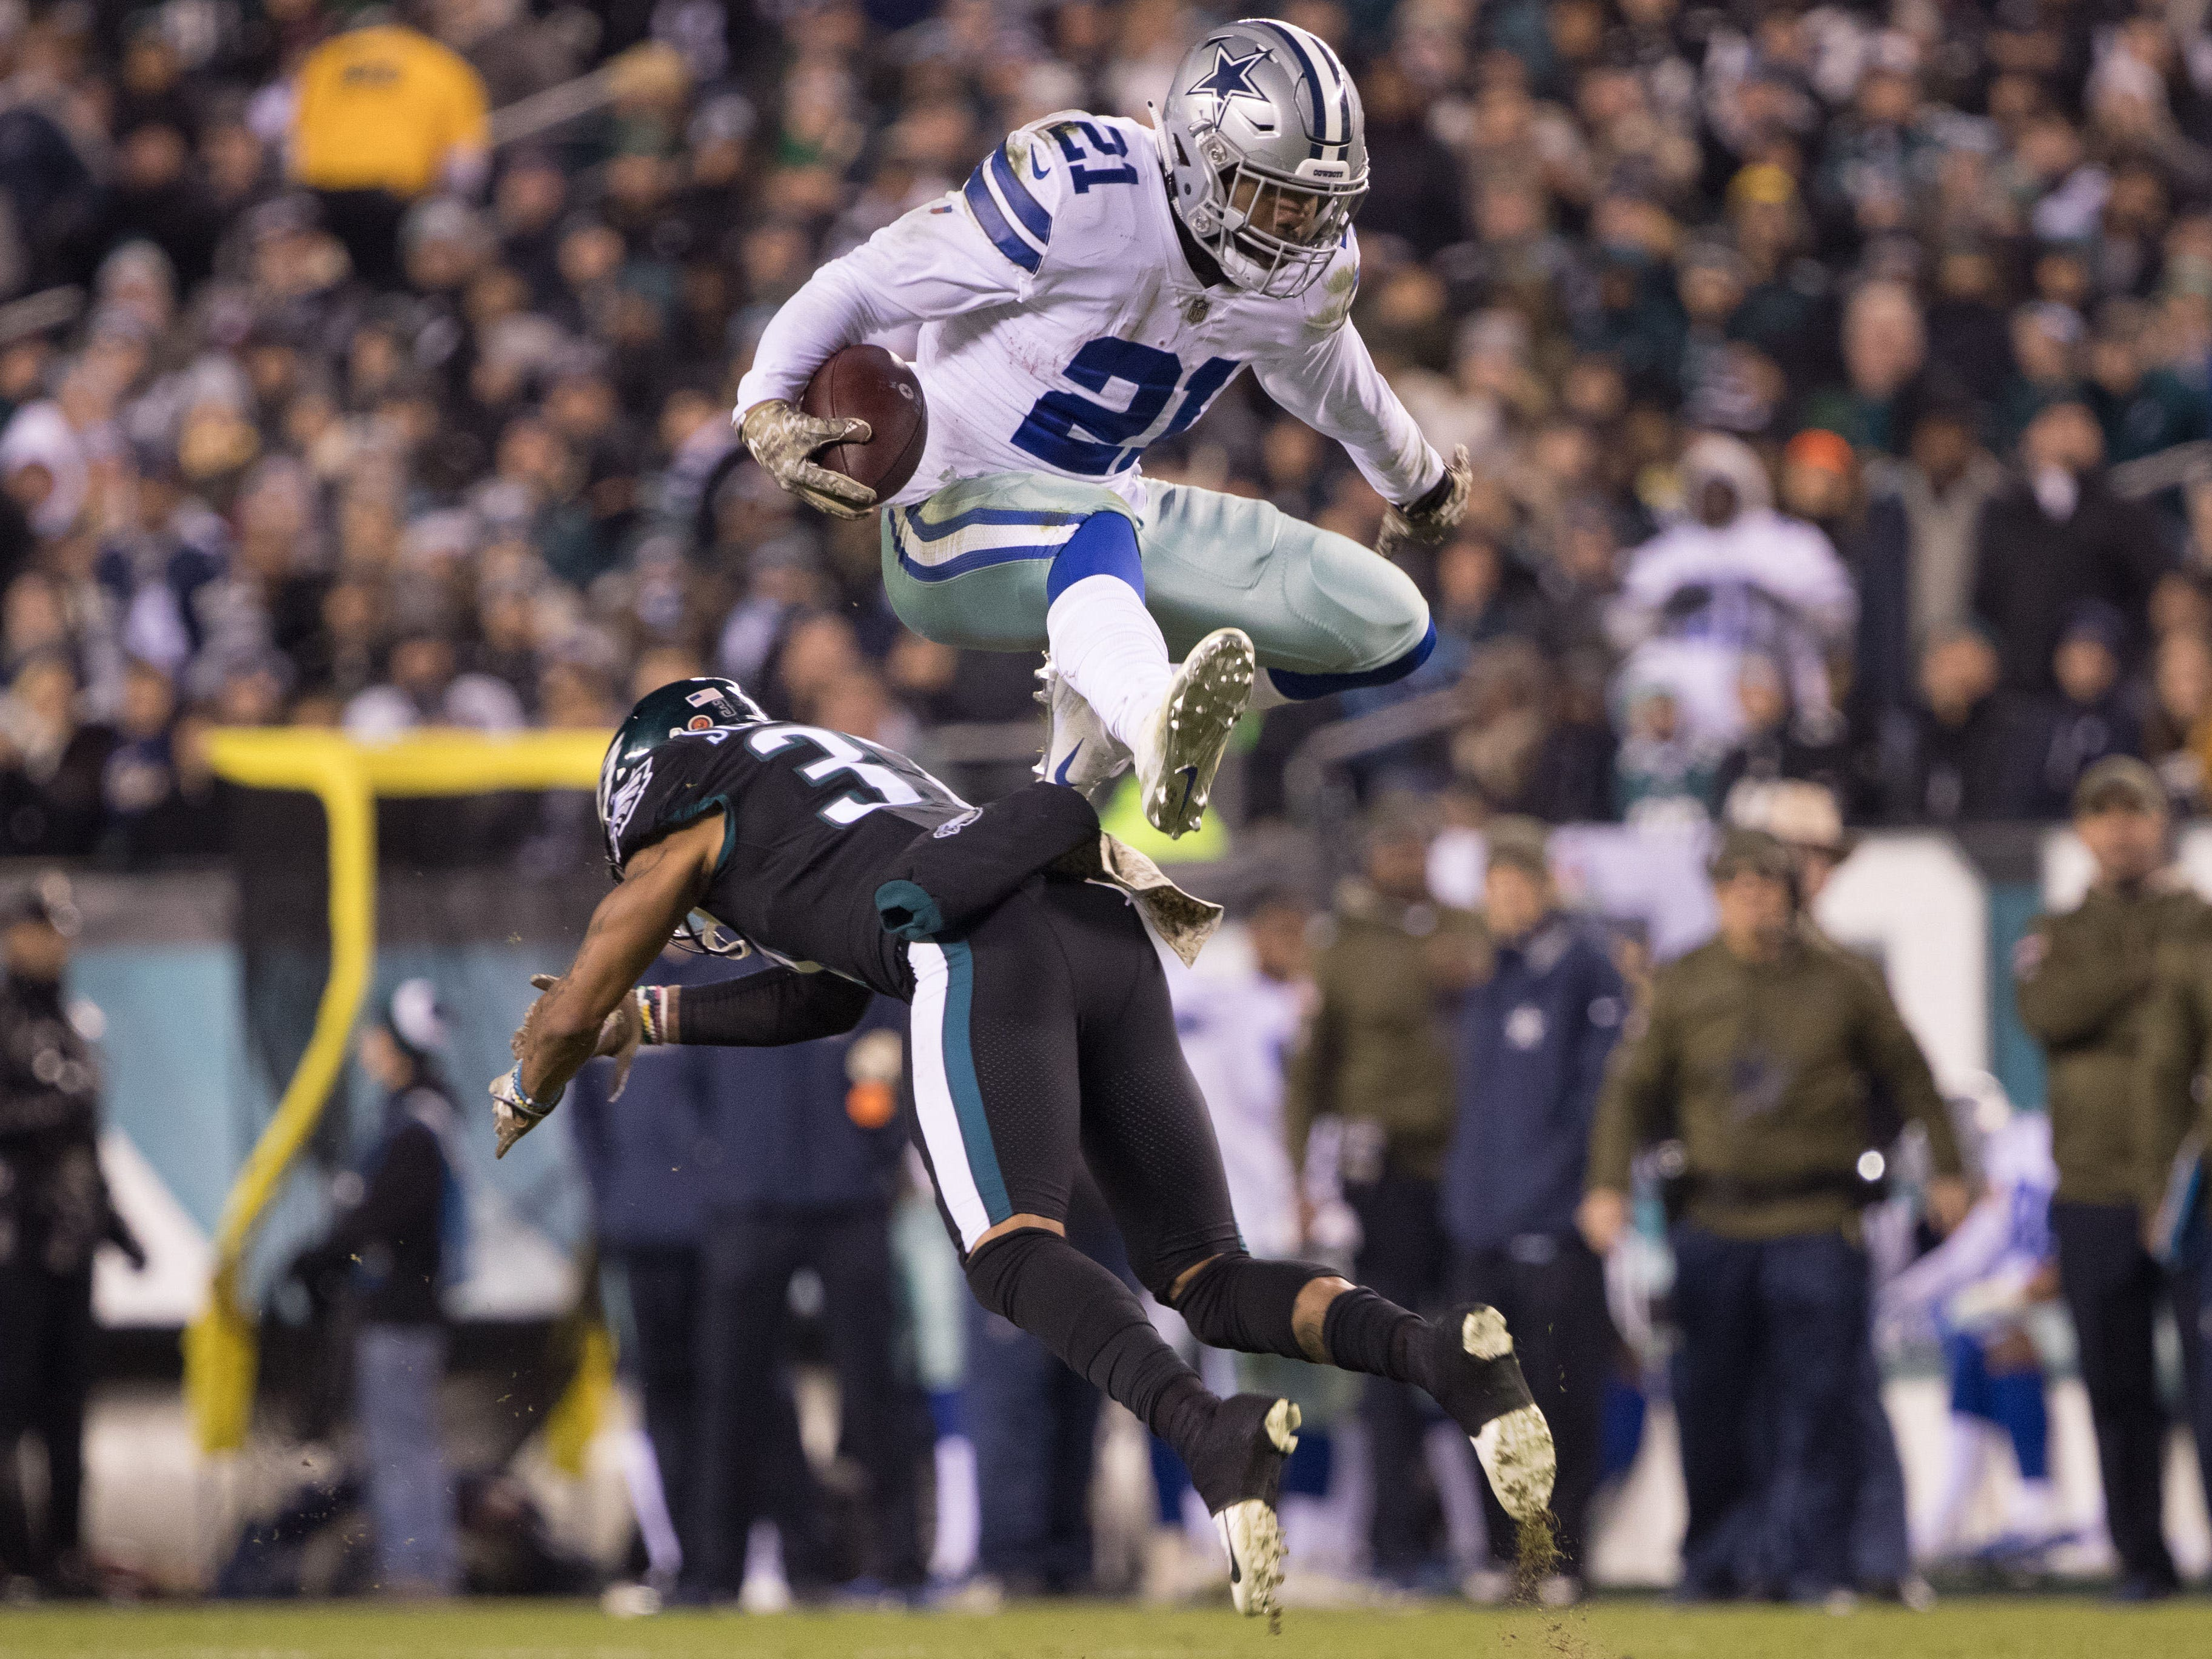 Week 10: Dallas Cowboys running back Ezekiel Elliott leaps over the tackle attempt of Philadelphia Eagles defensive back Tre Sullivan during the second quarter at Lincoln Financial Field. The Cowboys won the game, 27-20.